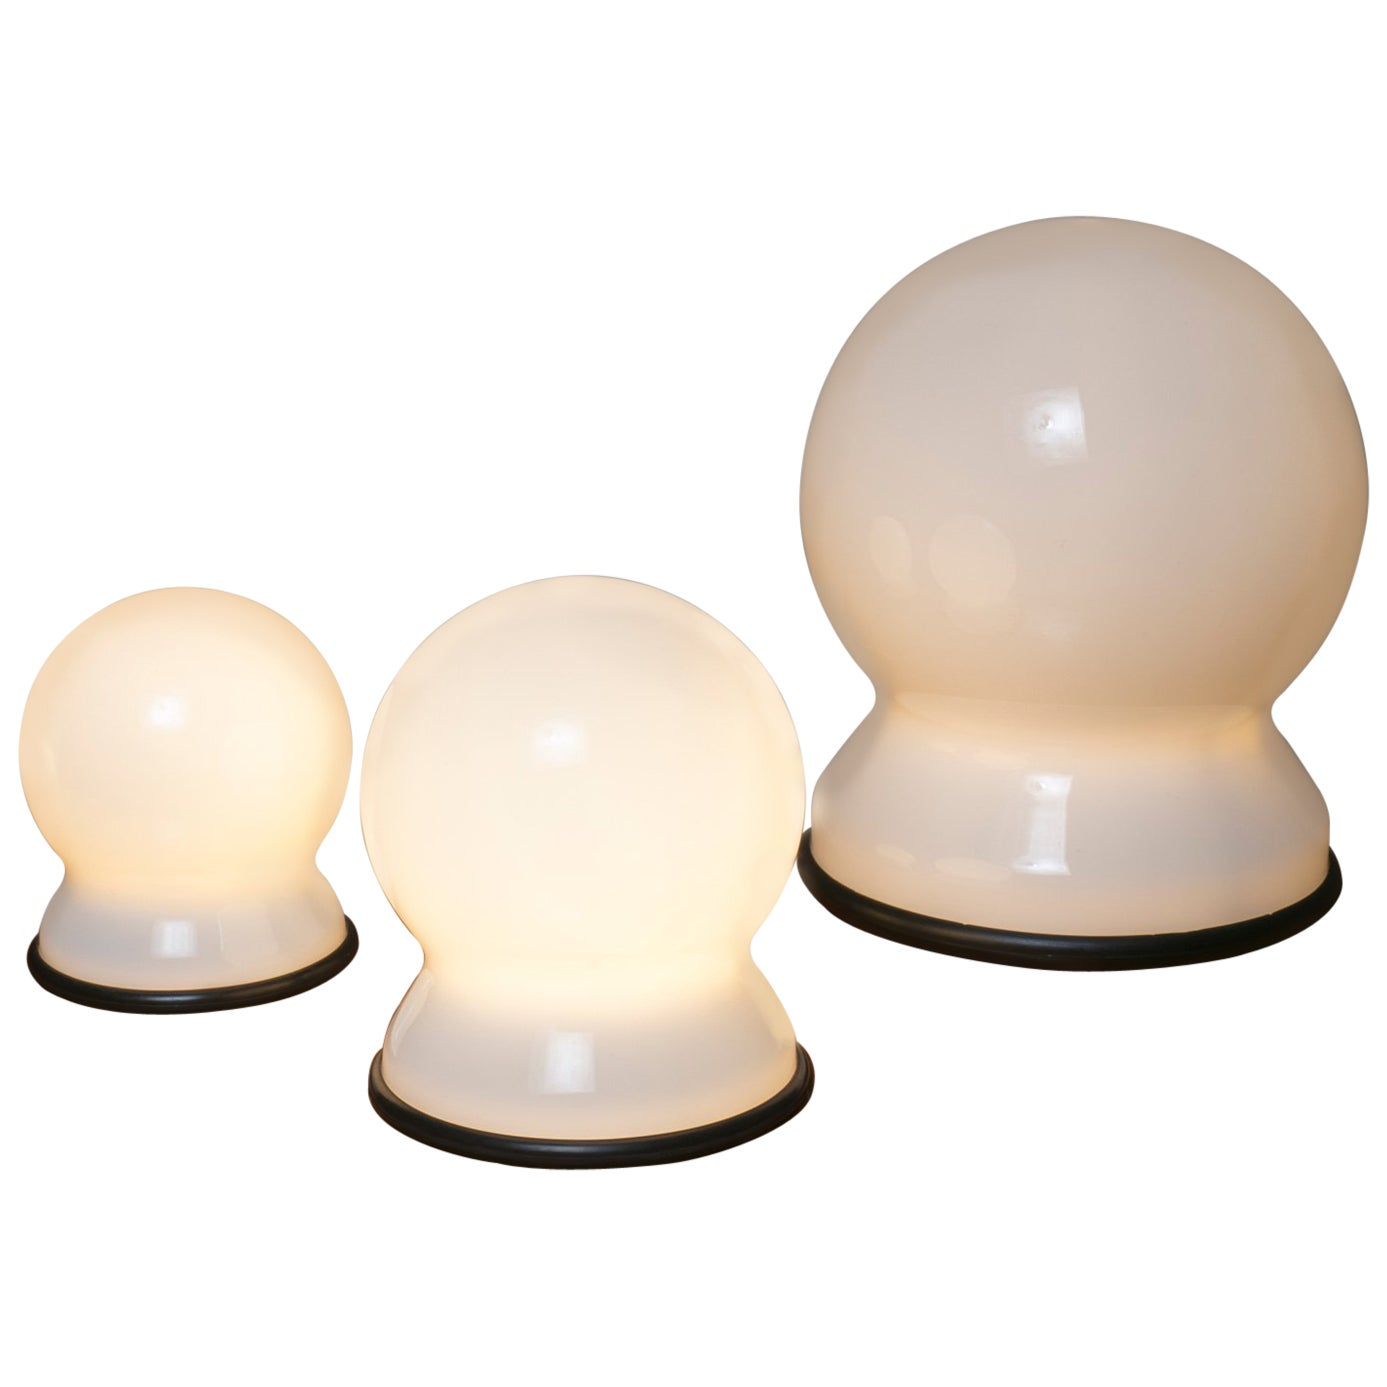 """Set of Three """"Scafandro"""" Table Lamps by Sergio Asti for Candle"""